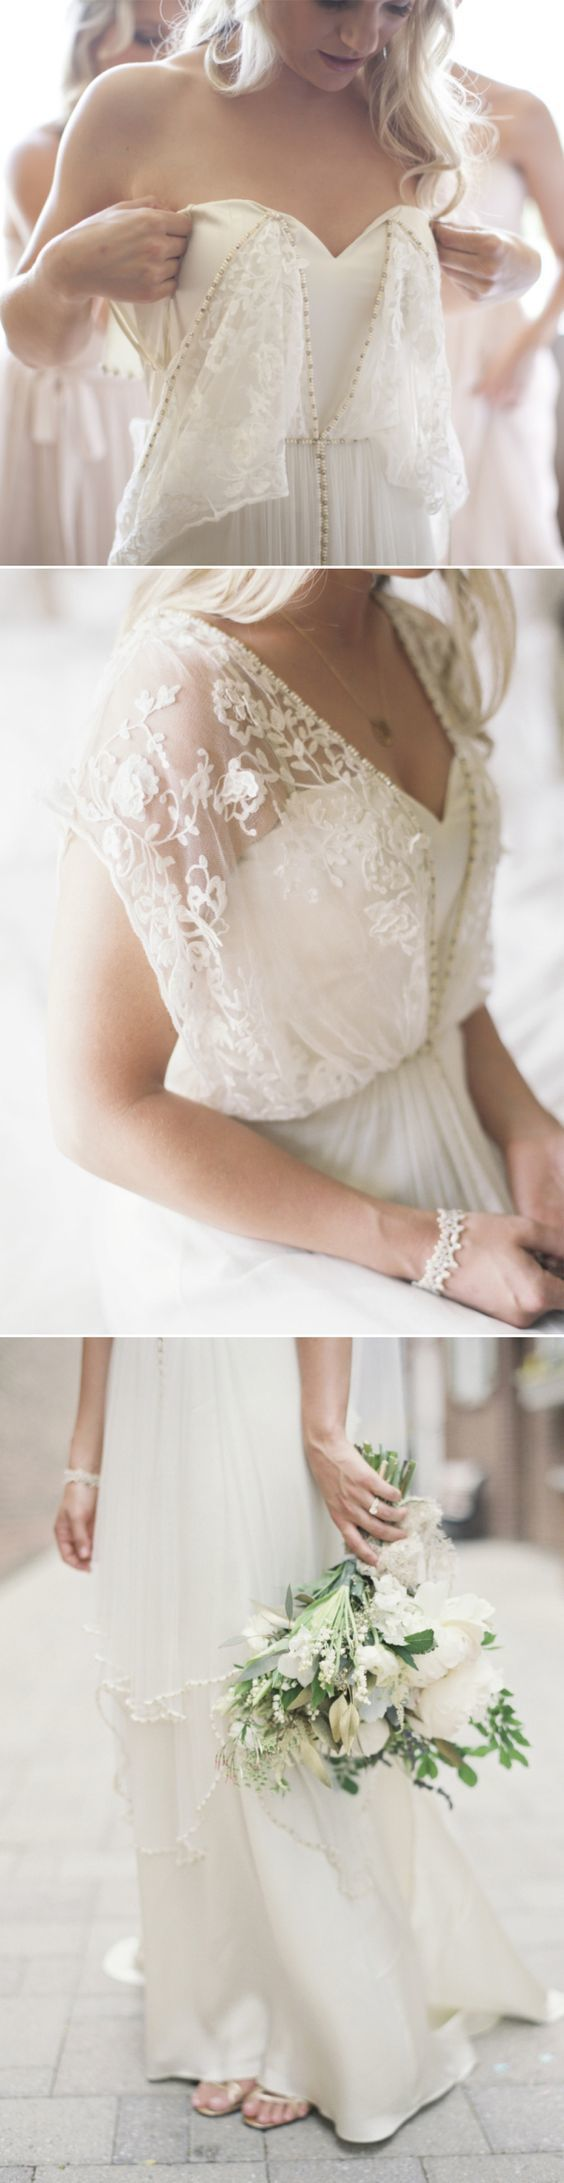 Wedding Dresses for Brides Bridesmaid and Flower Girls